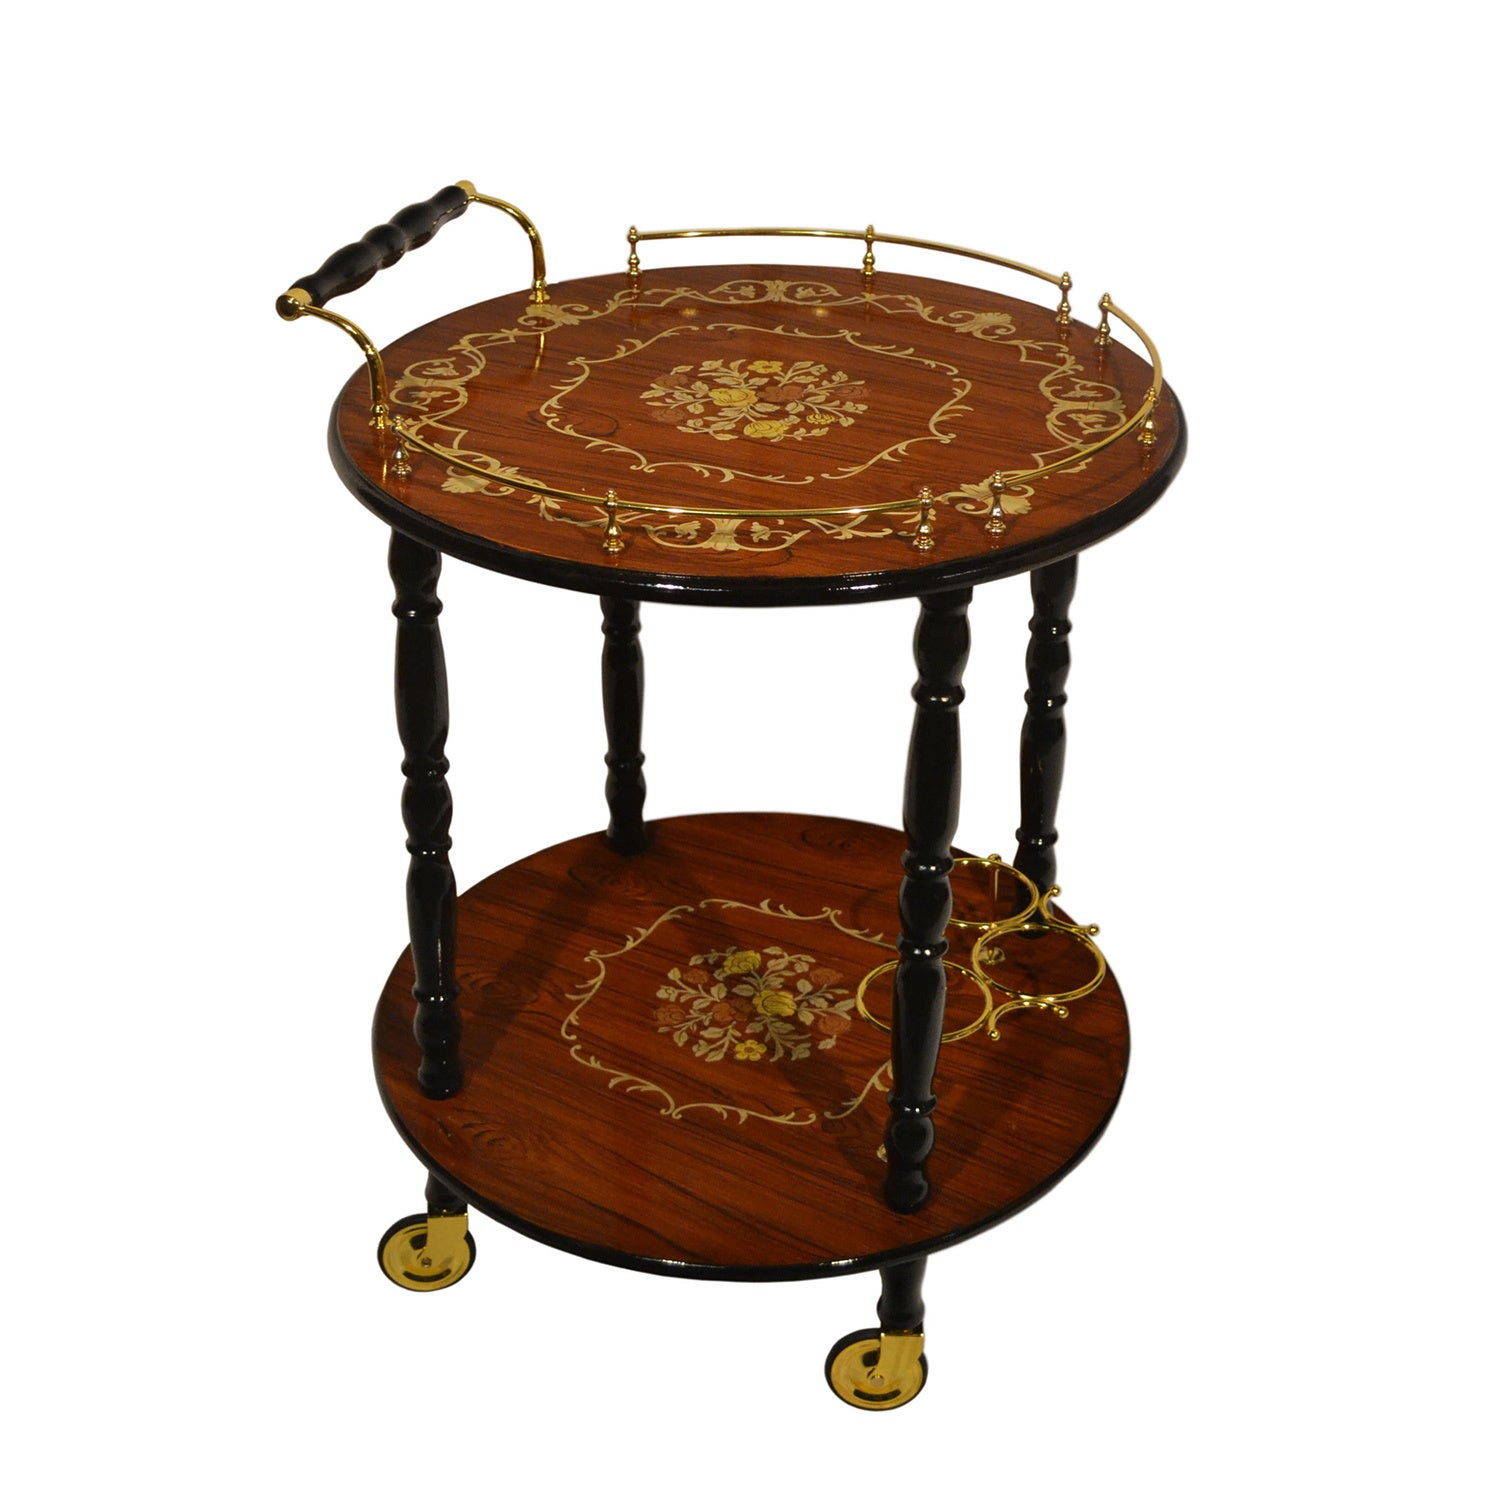 Three Star Sorrento Inlaid Wood Inspired Two-tier Beverag...